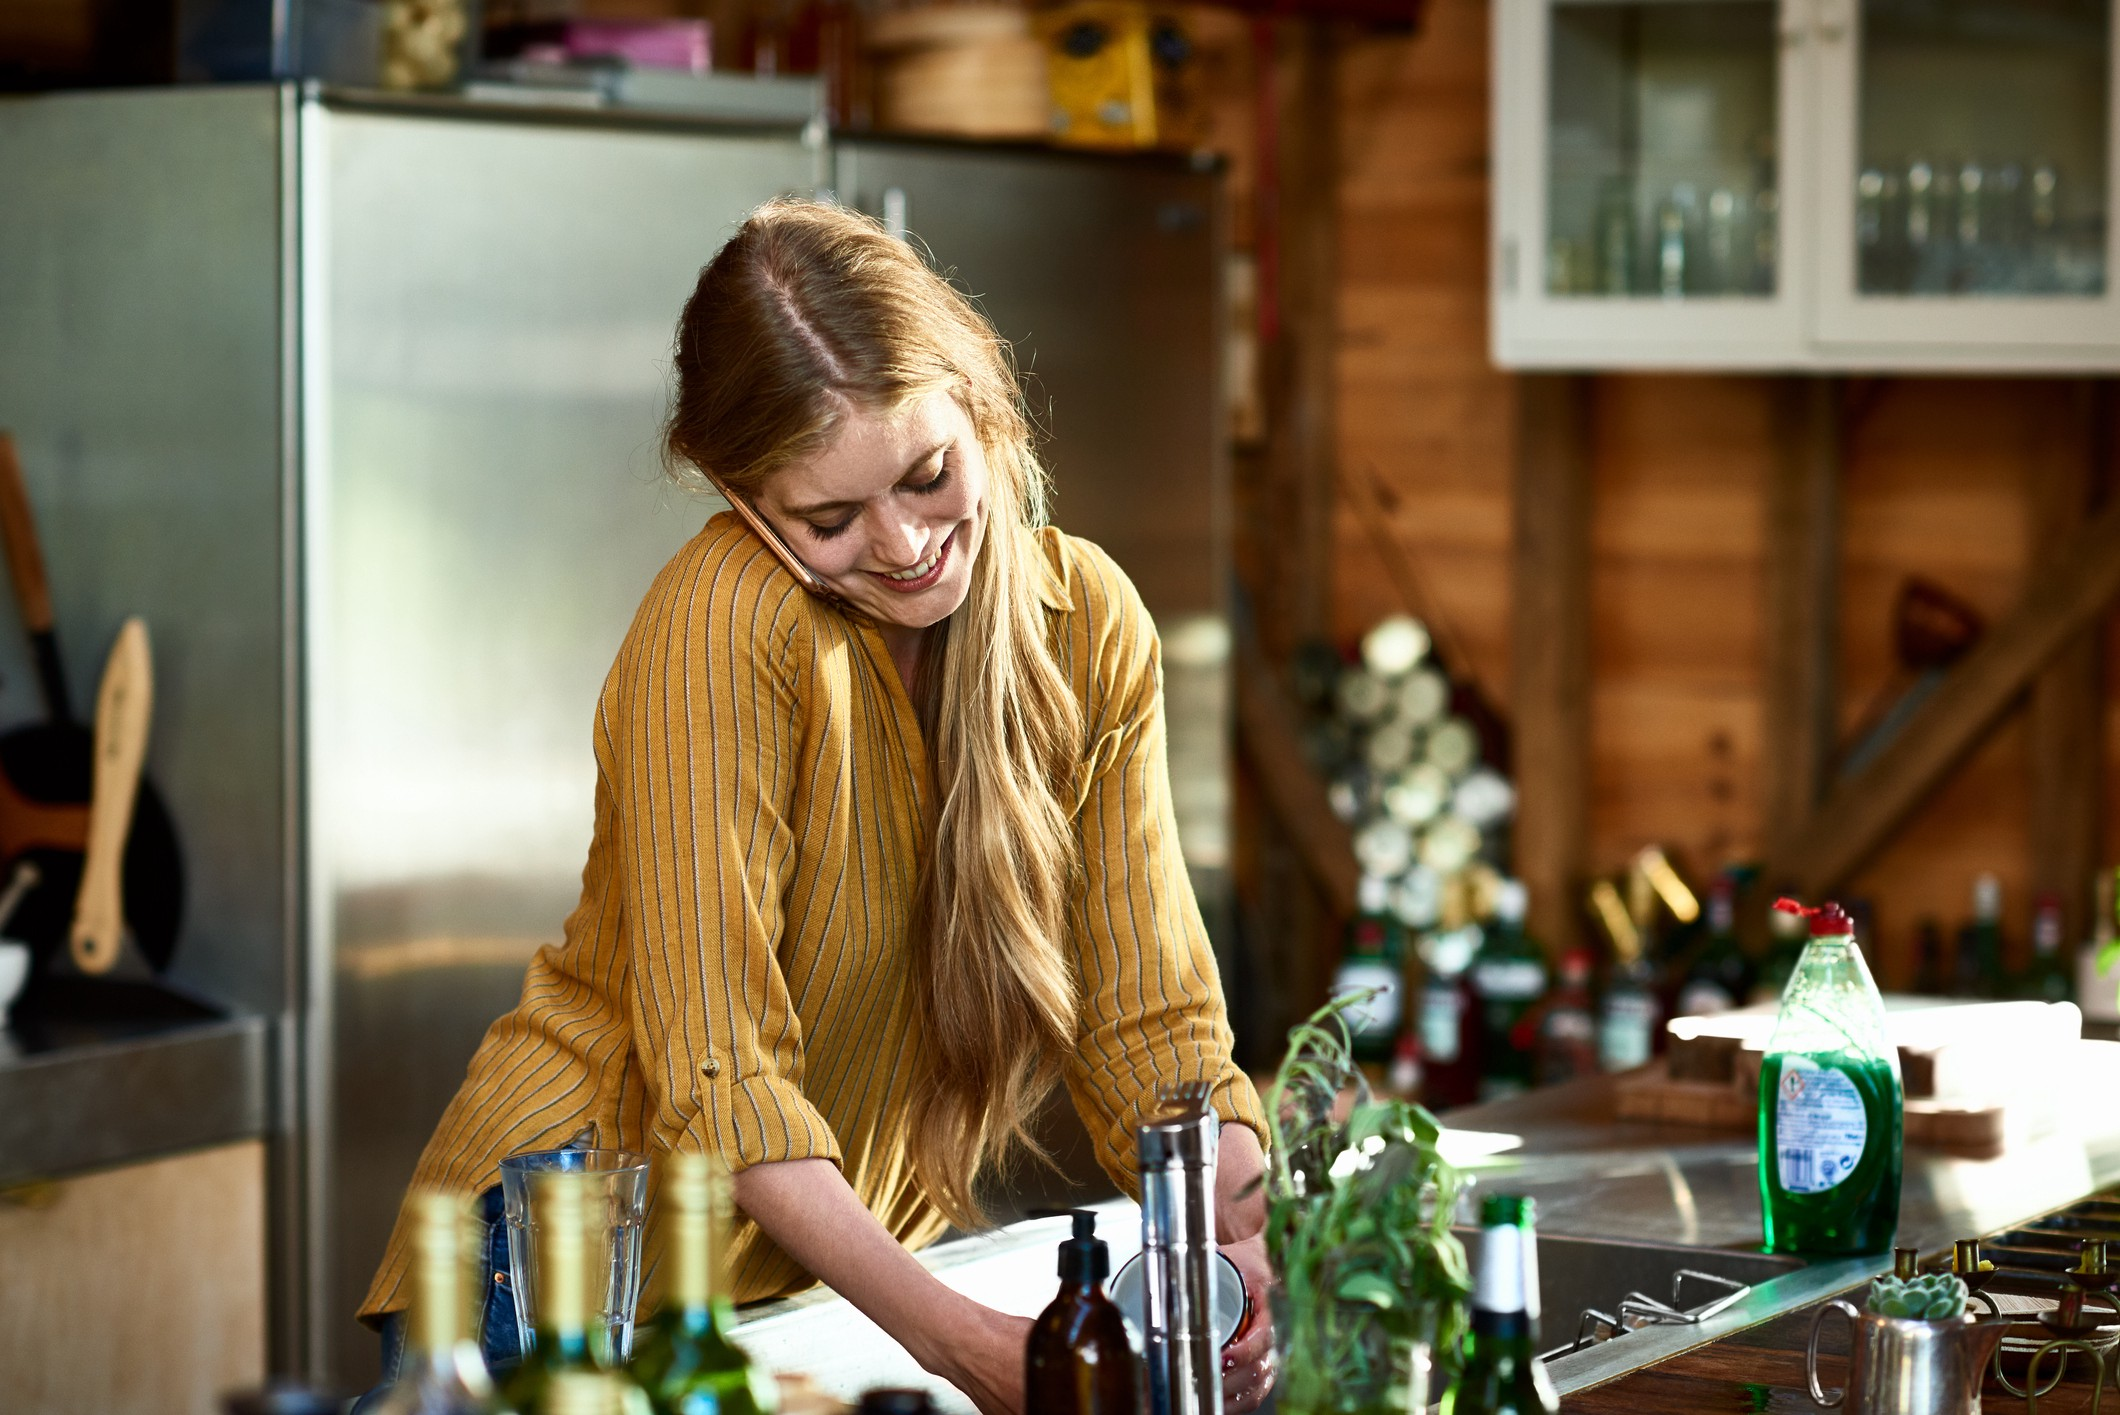 Young woman multitasking talking on the phone while washing dishes.